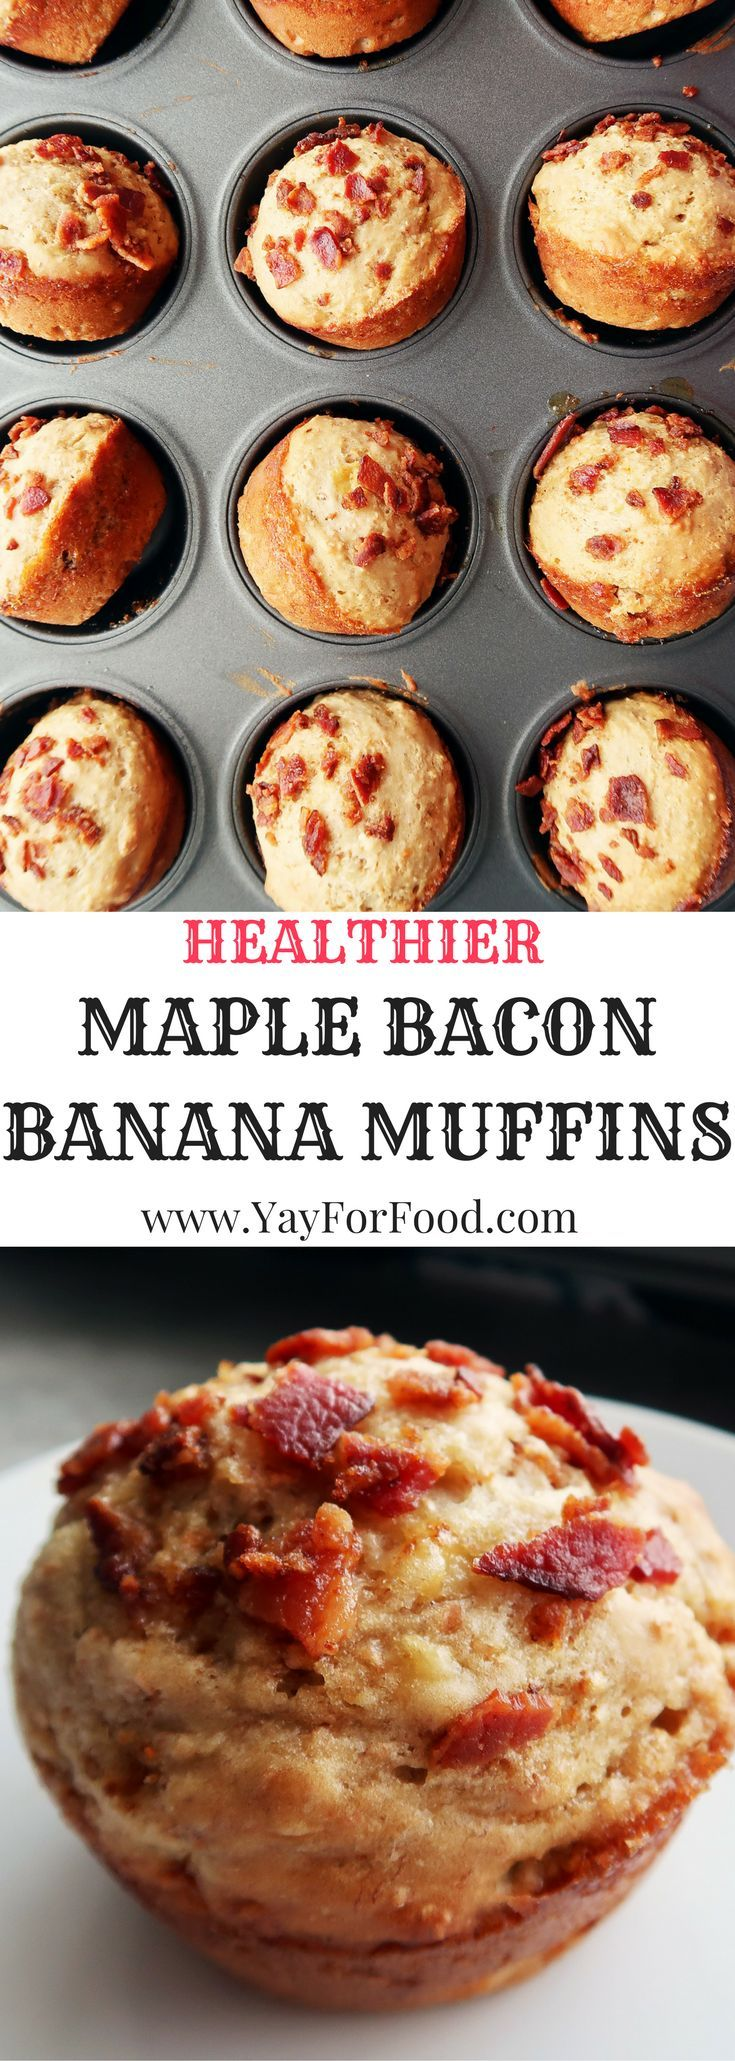 A tasty maple bacon banana breakfast muffin that is sweet and savoury! No butter in this recipe either; making this a healthier muffin option!